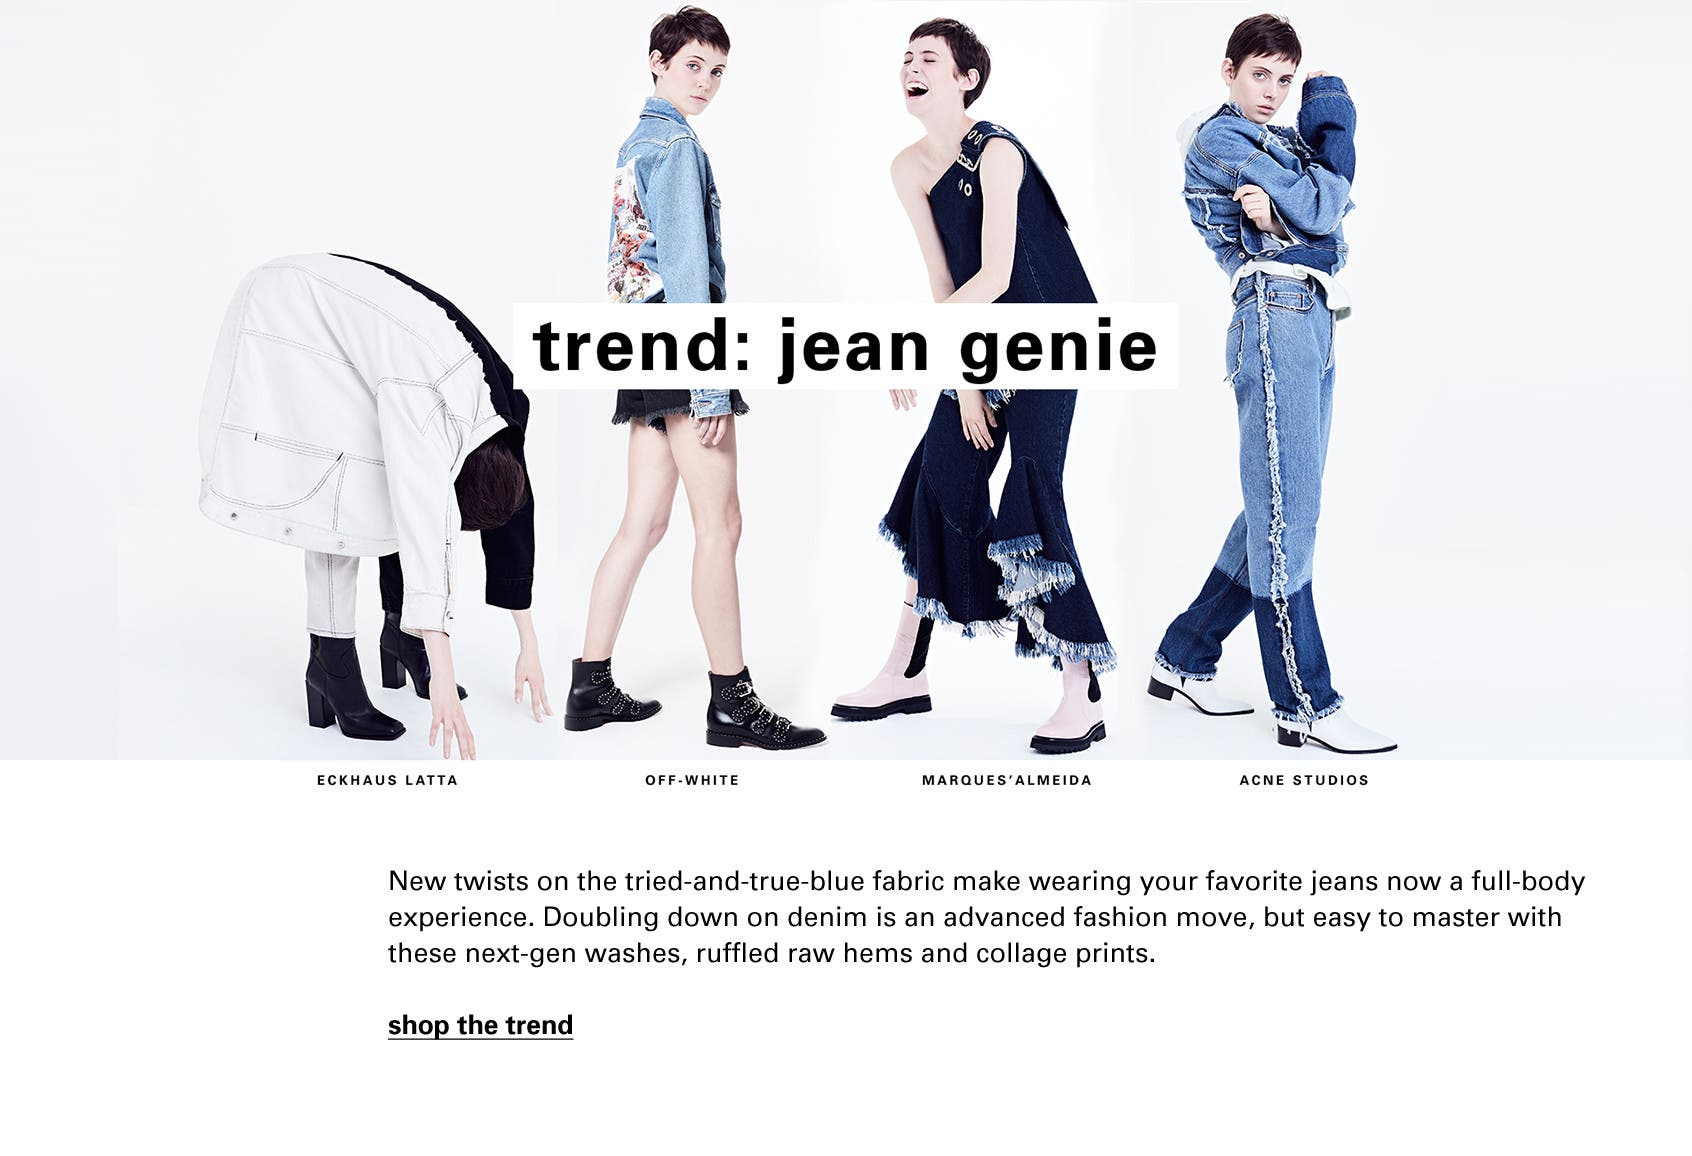 Jean genie: Eckhaus Latta, Off-White, Marques'Almeida and Acne Studios.